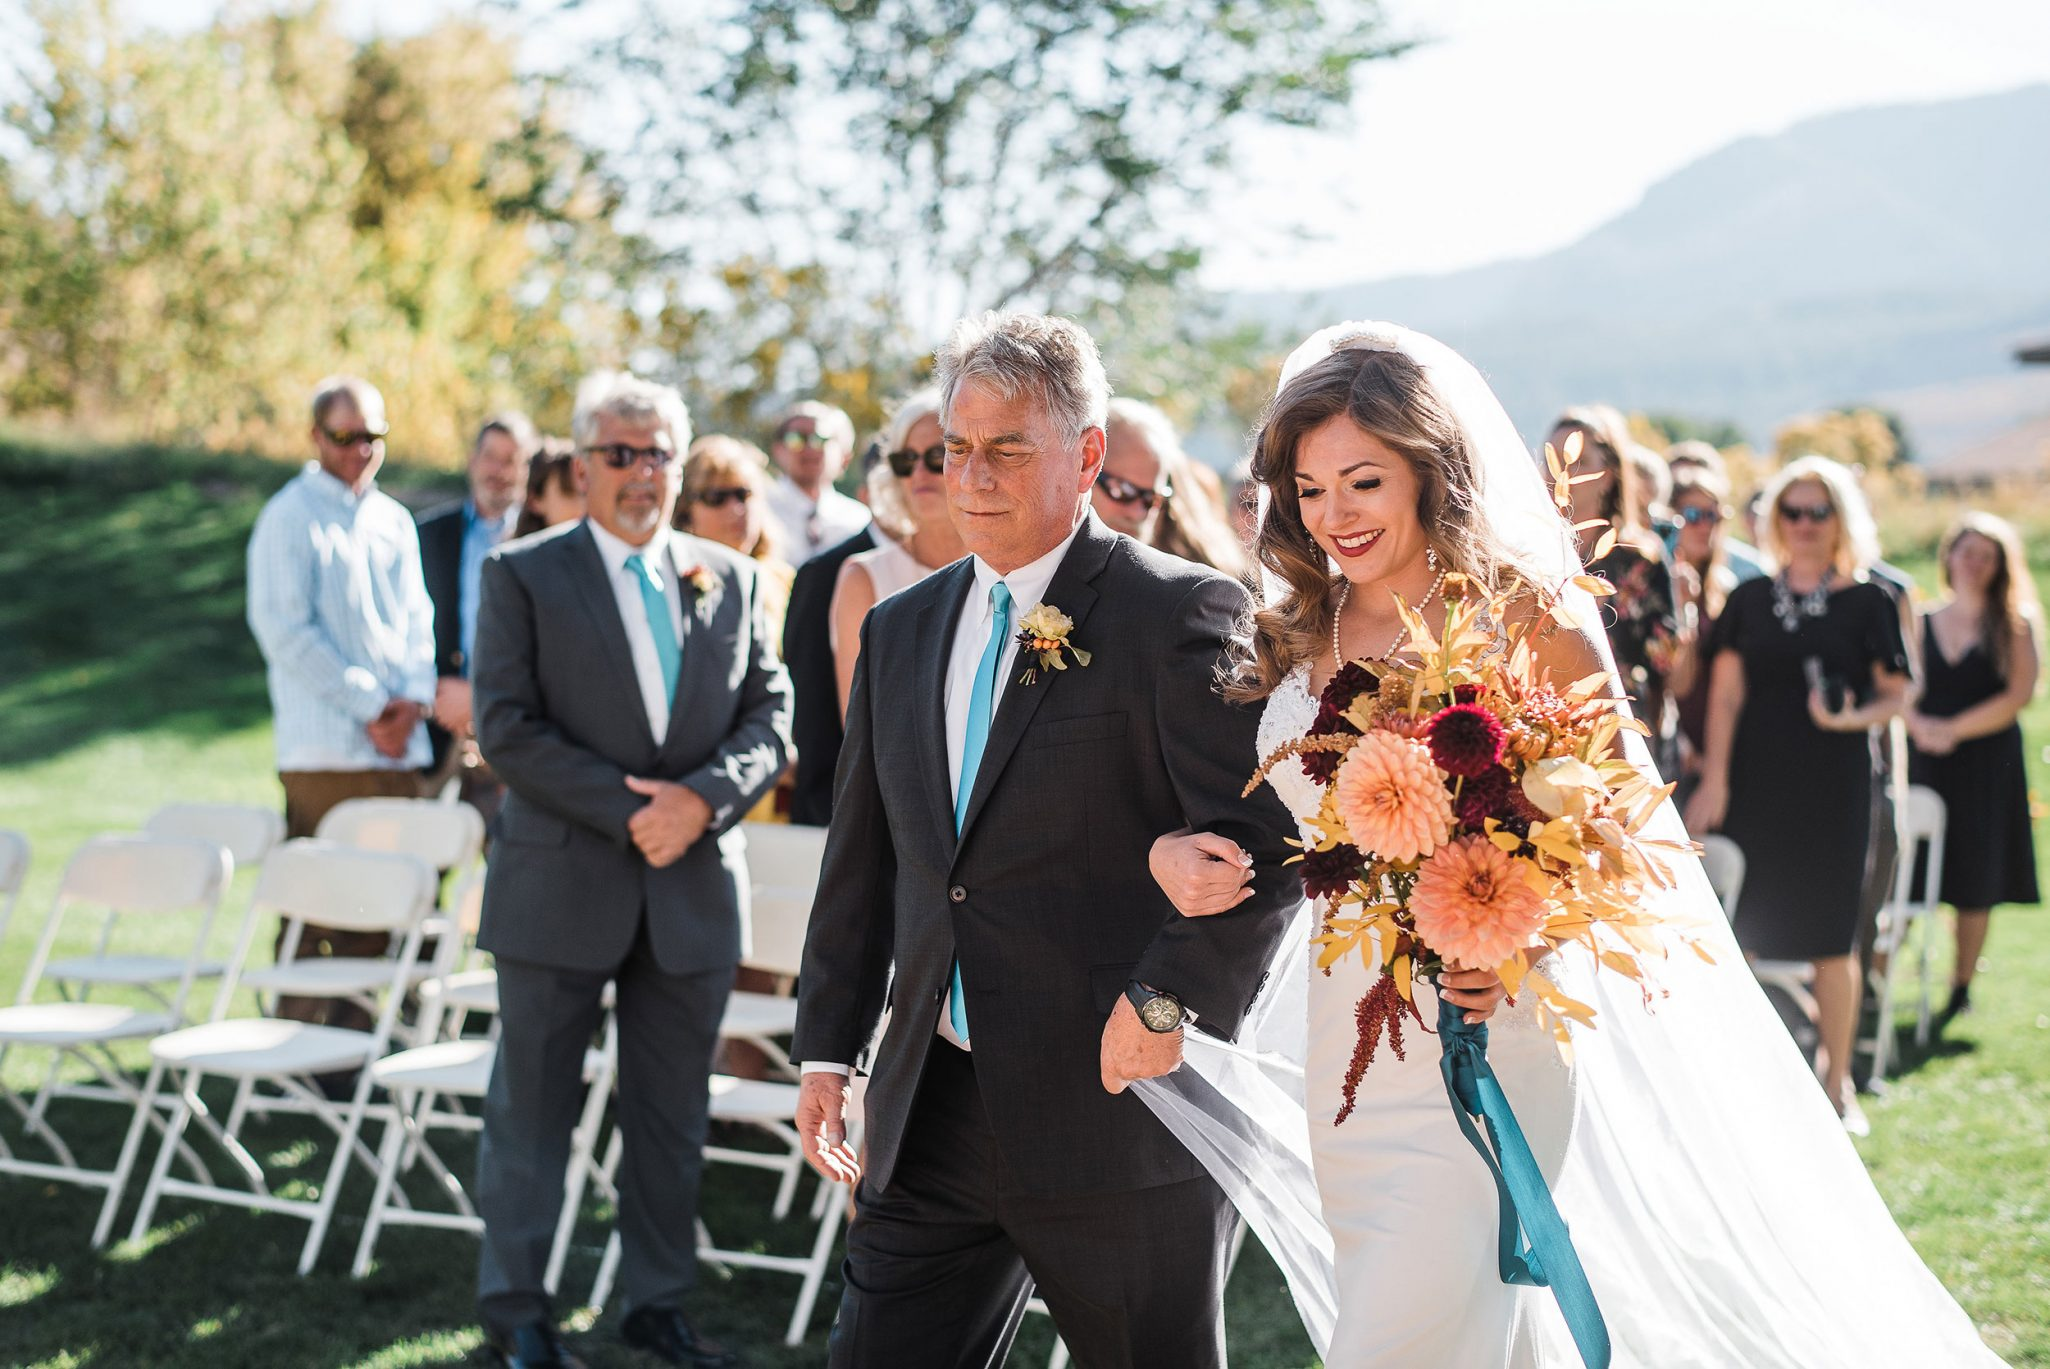 Autumn Wedding at Dalton Ranch, Durango Colorado